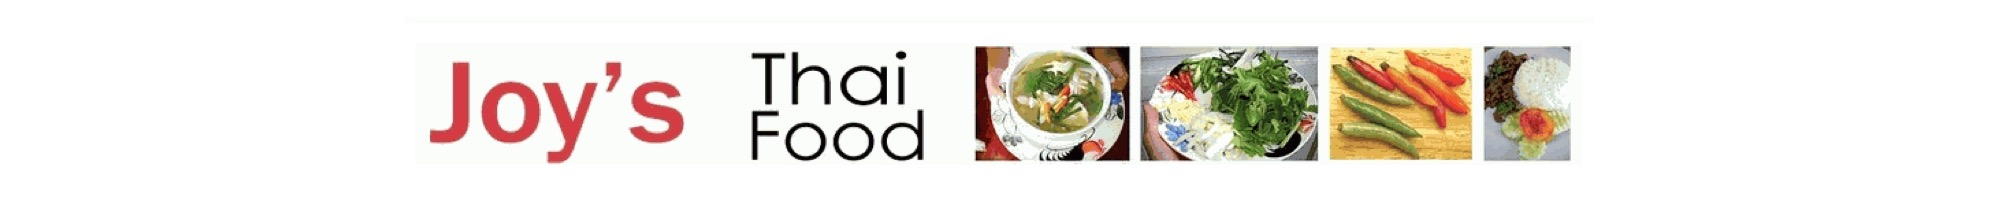 Thai Food Recipes and Cooking Blog | JoysThaiFood